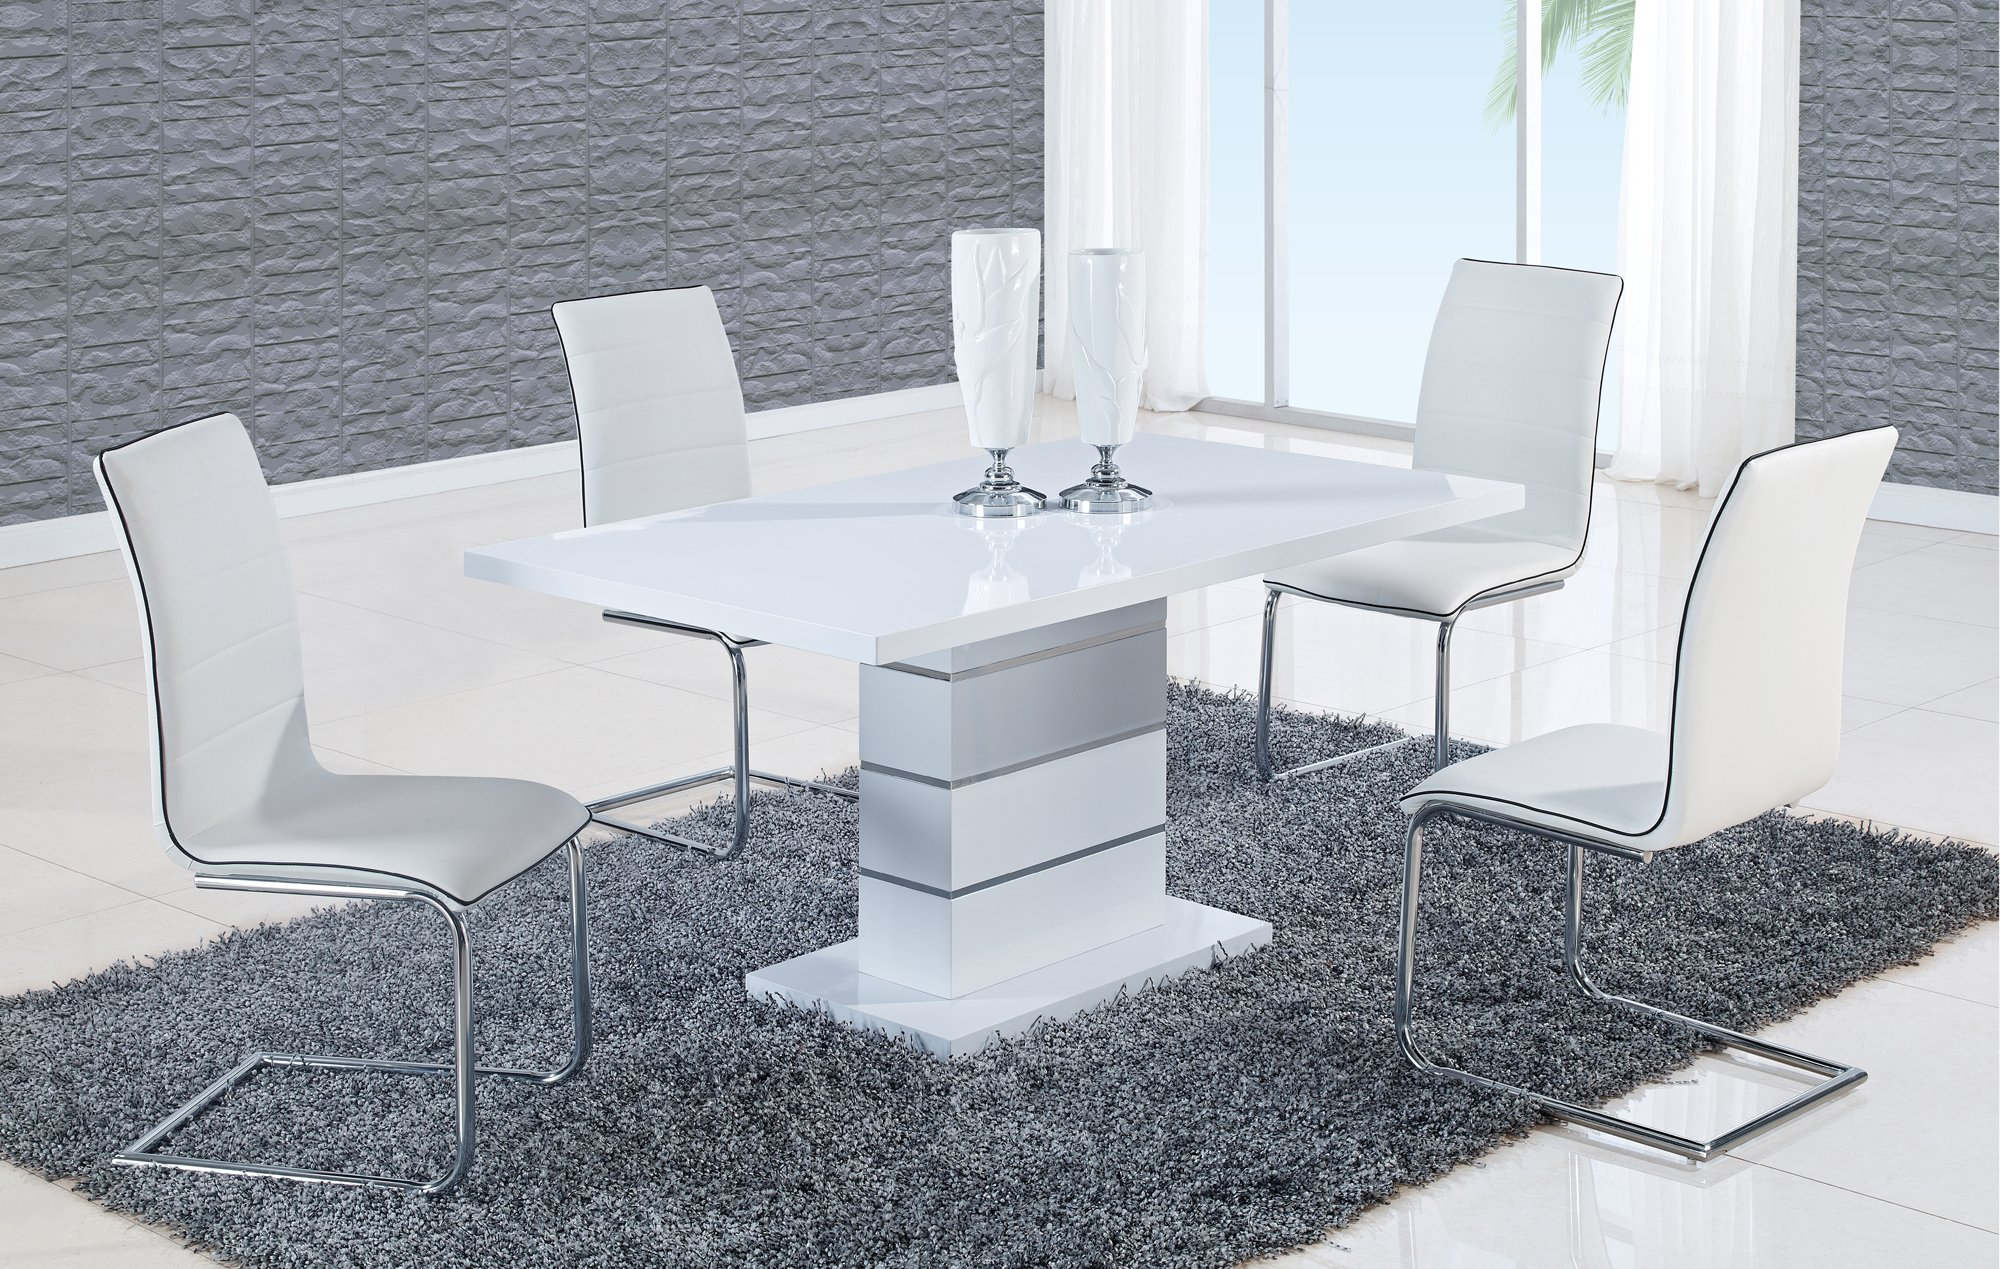 Dining Table D470DT White HG by Global Furniture : D470DTD490DC WH from futonland.com size 2000 x 1269 jpeg 2031kB